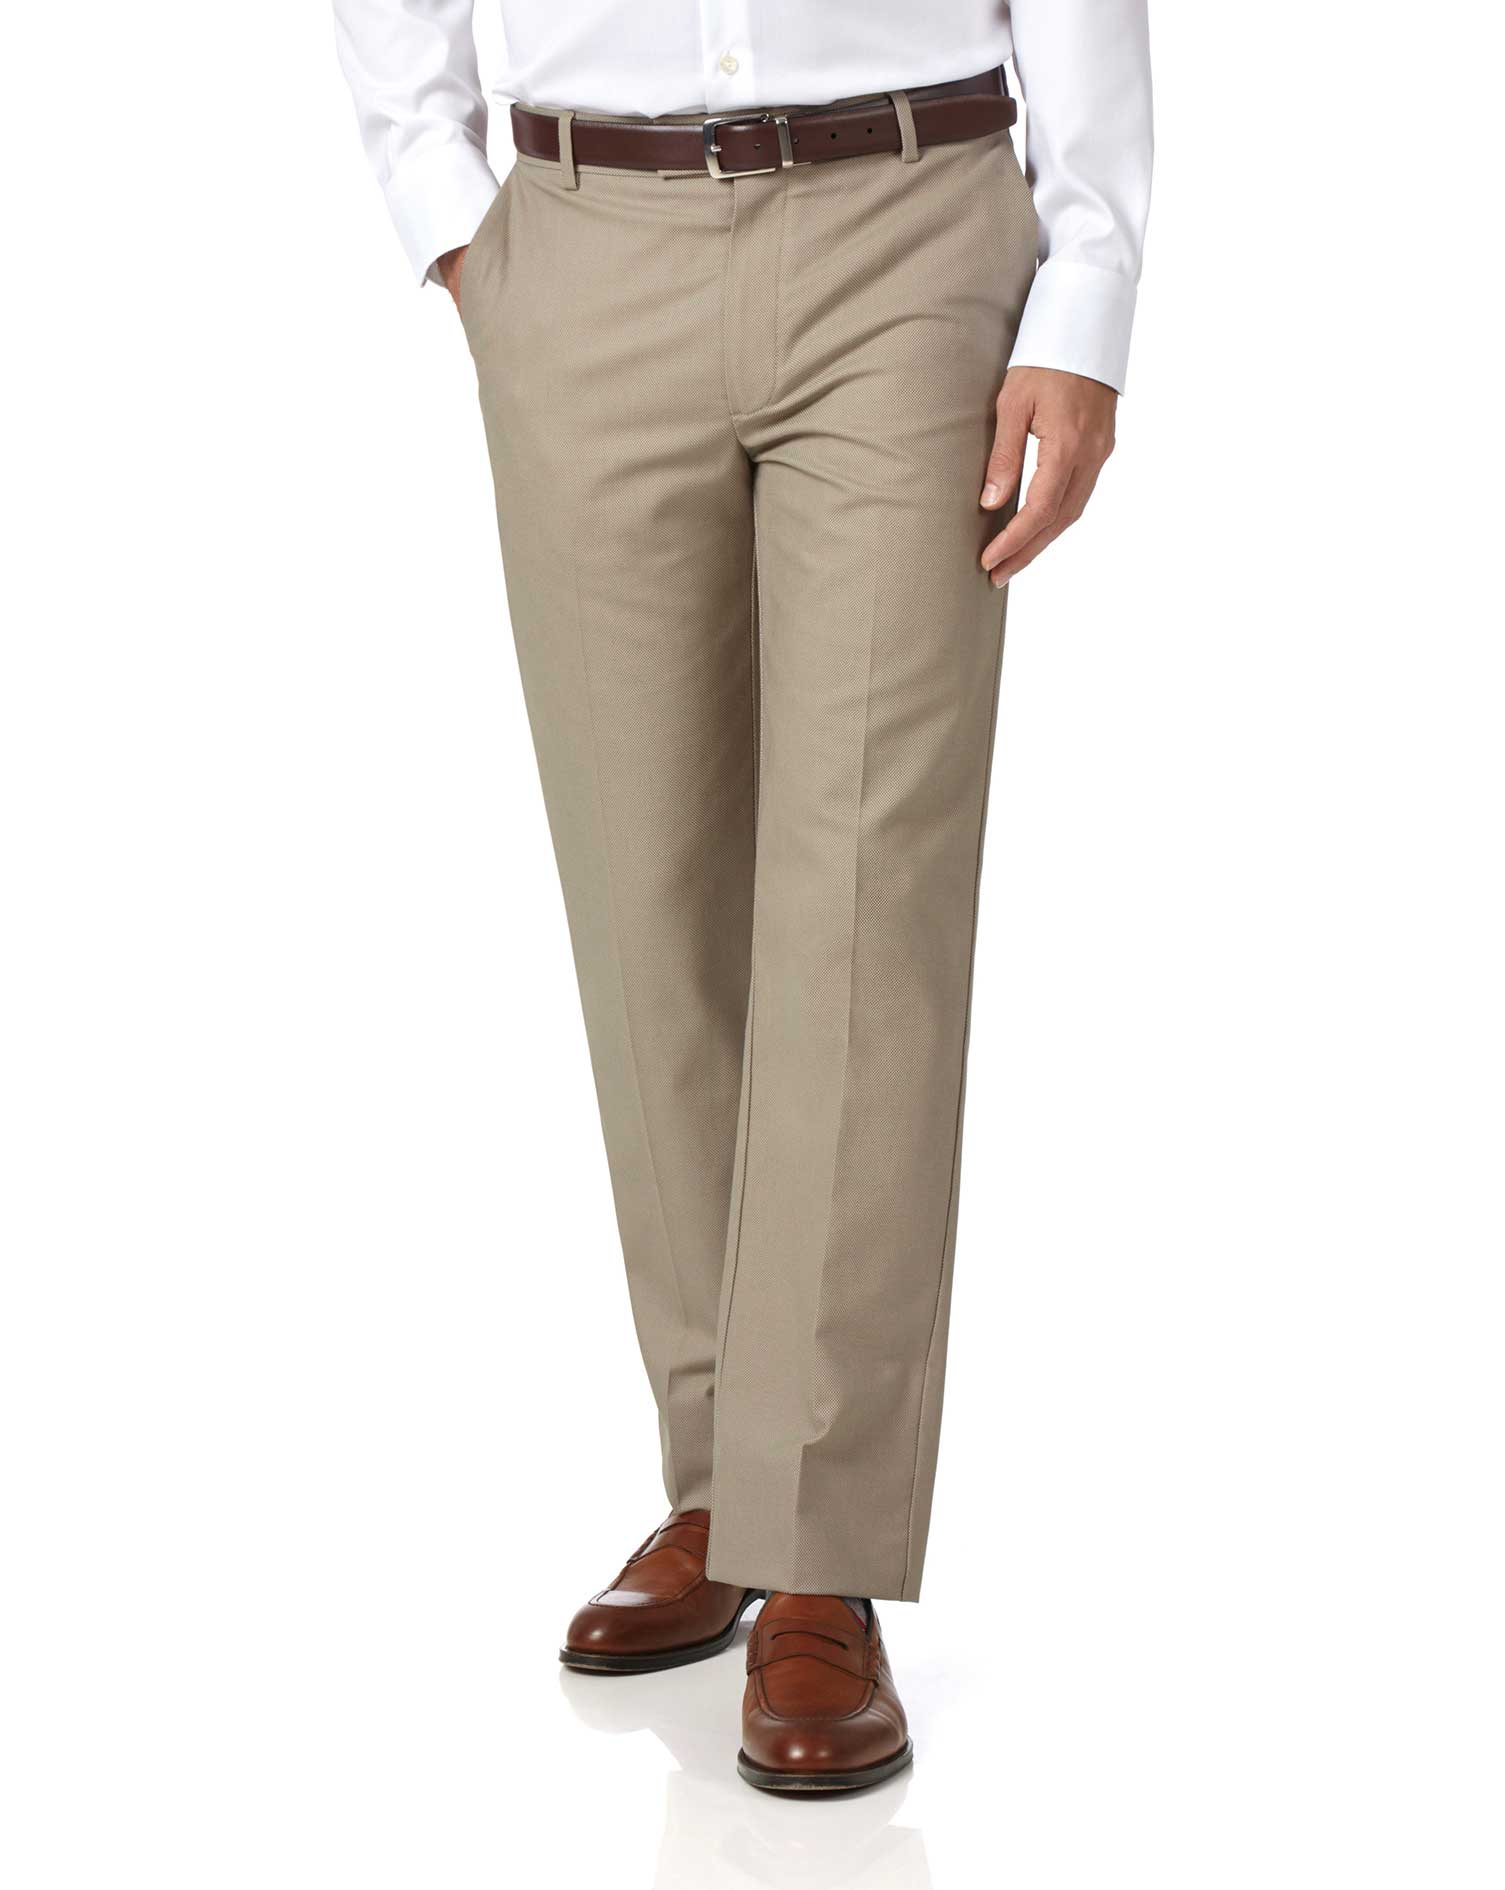 Stone Classic Fit Stretch Non-Iron Trousers Size W40 L34 by Charles Tyrwhitt